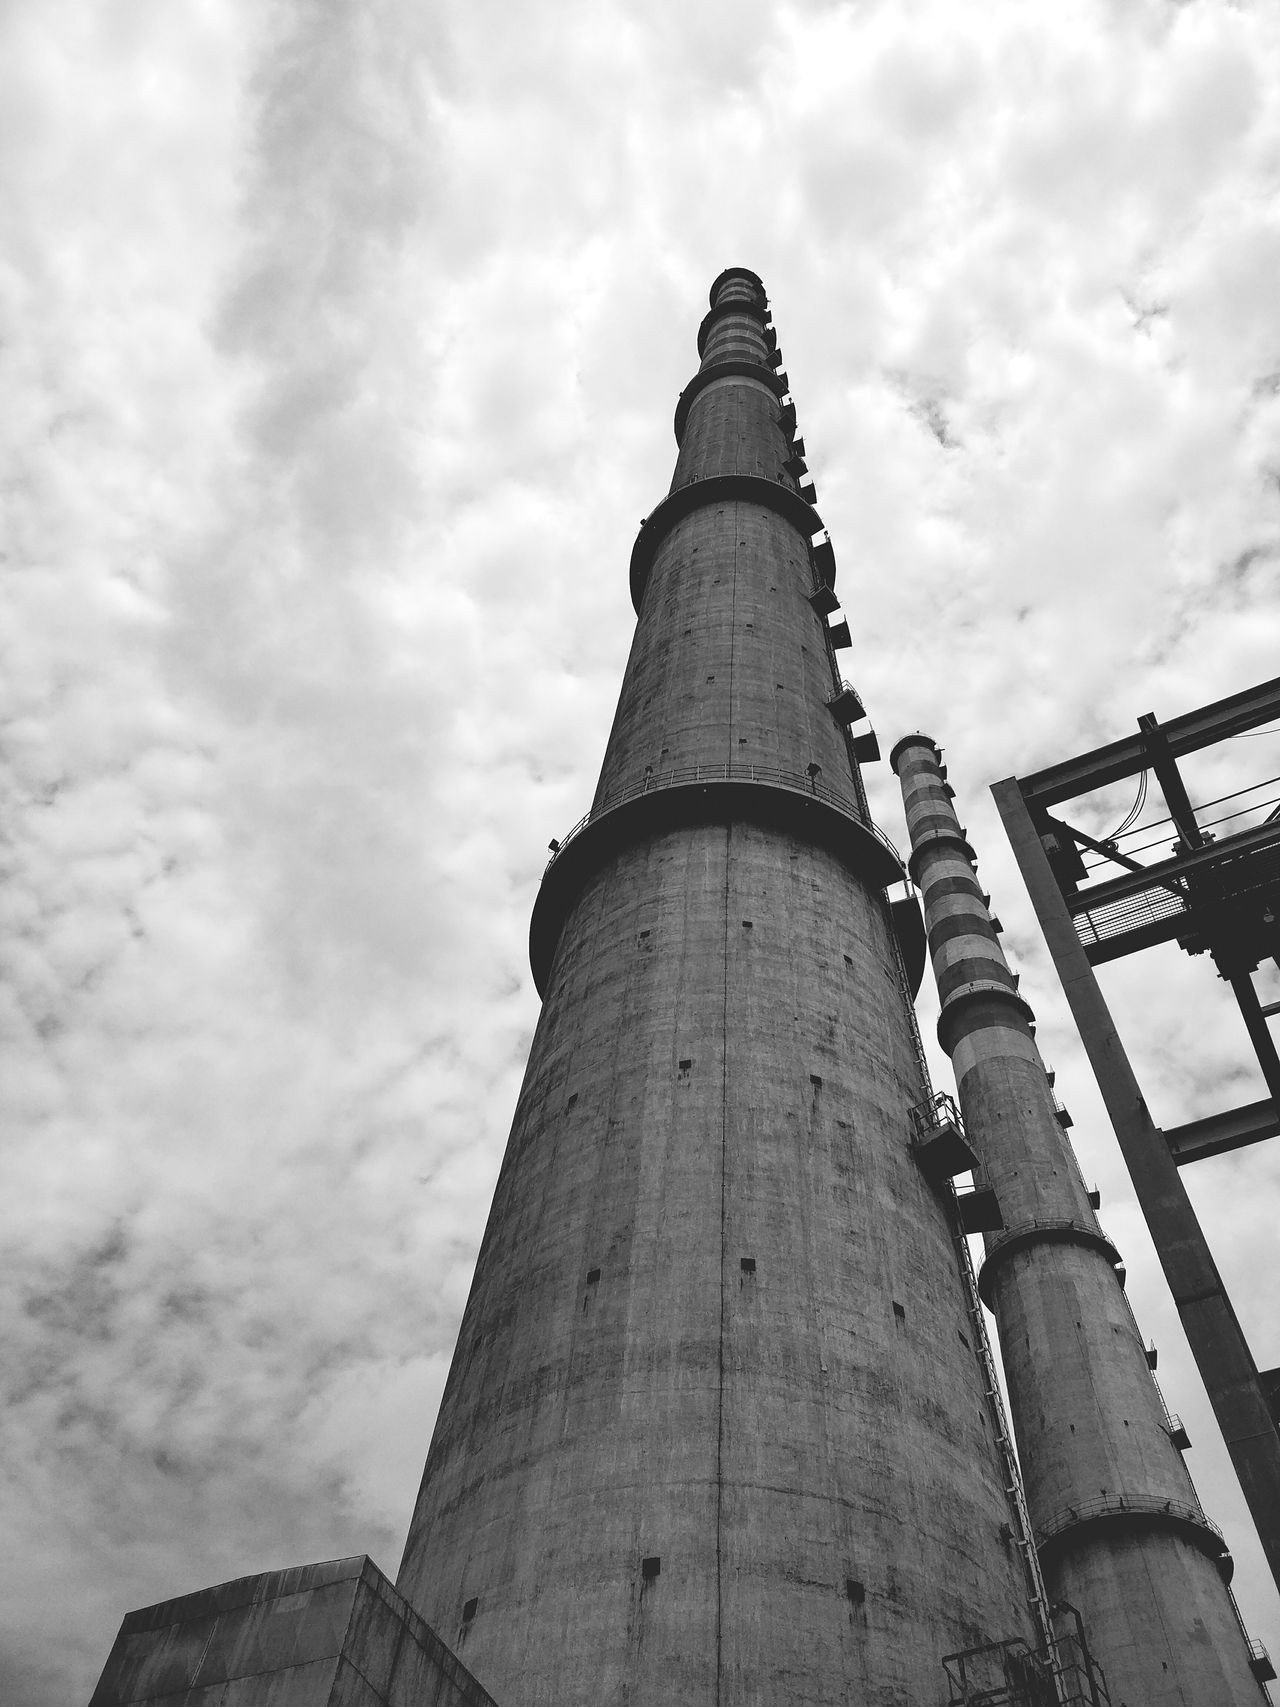 Low Angle ViewTravel Destinations No People Outdoors Factory Innovation Sky Day Karnataka TheWeek On EyEem Landscape_Collection Monochrome Bnw Blackandwhite India Clouds_of_our_world Architecture Architecture Built Structure